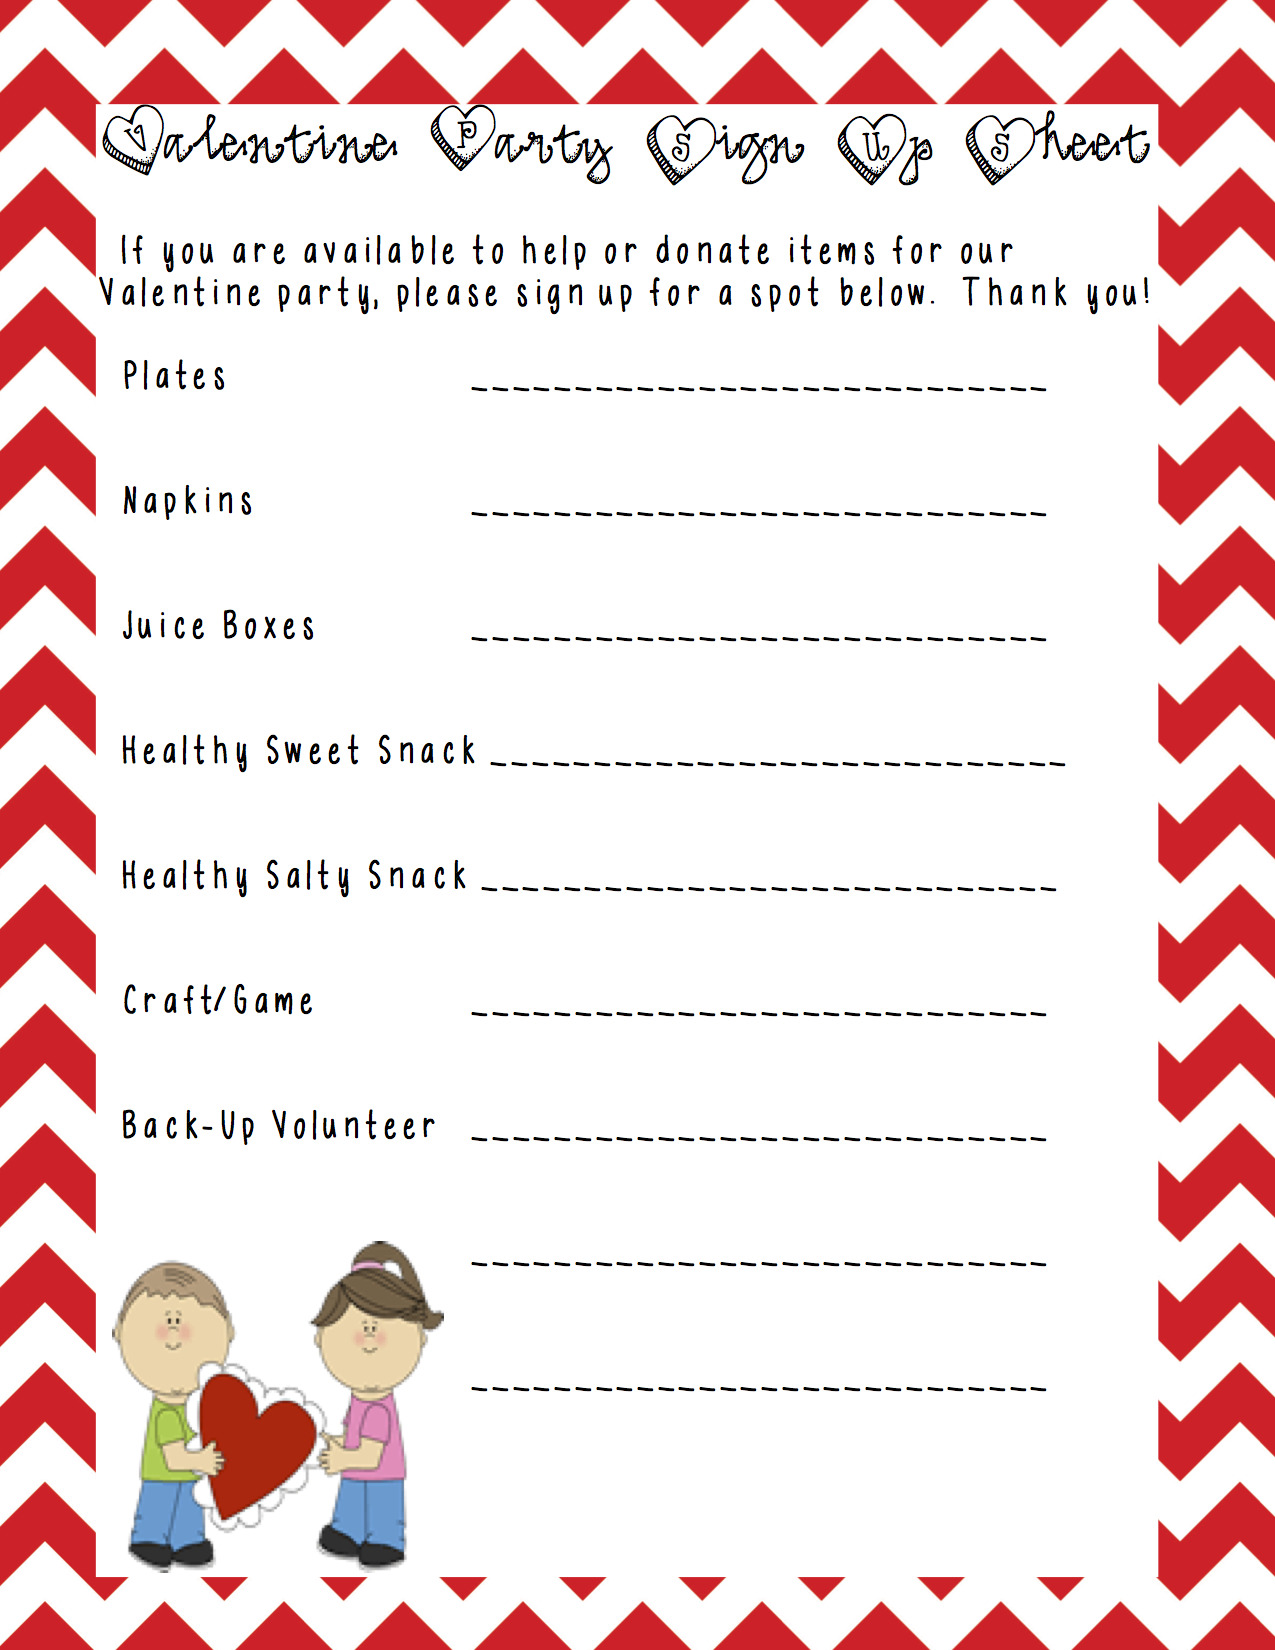 A sample class party sign up sheet that I made